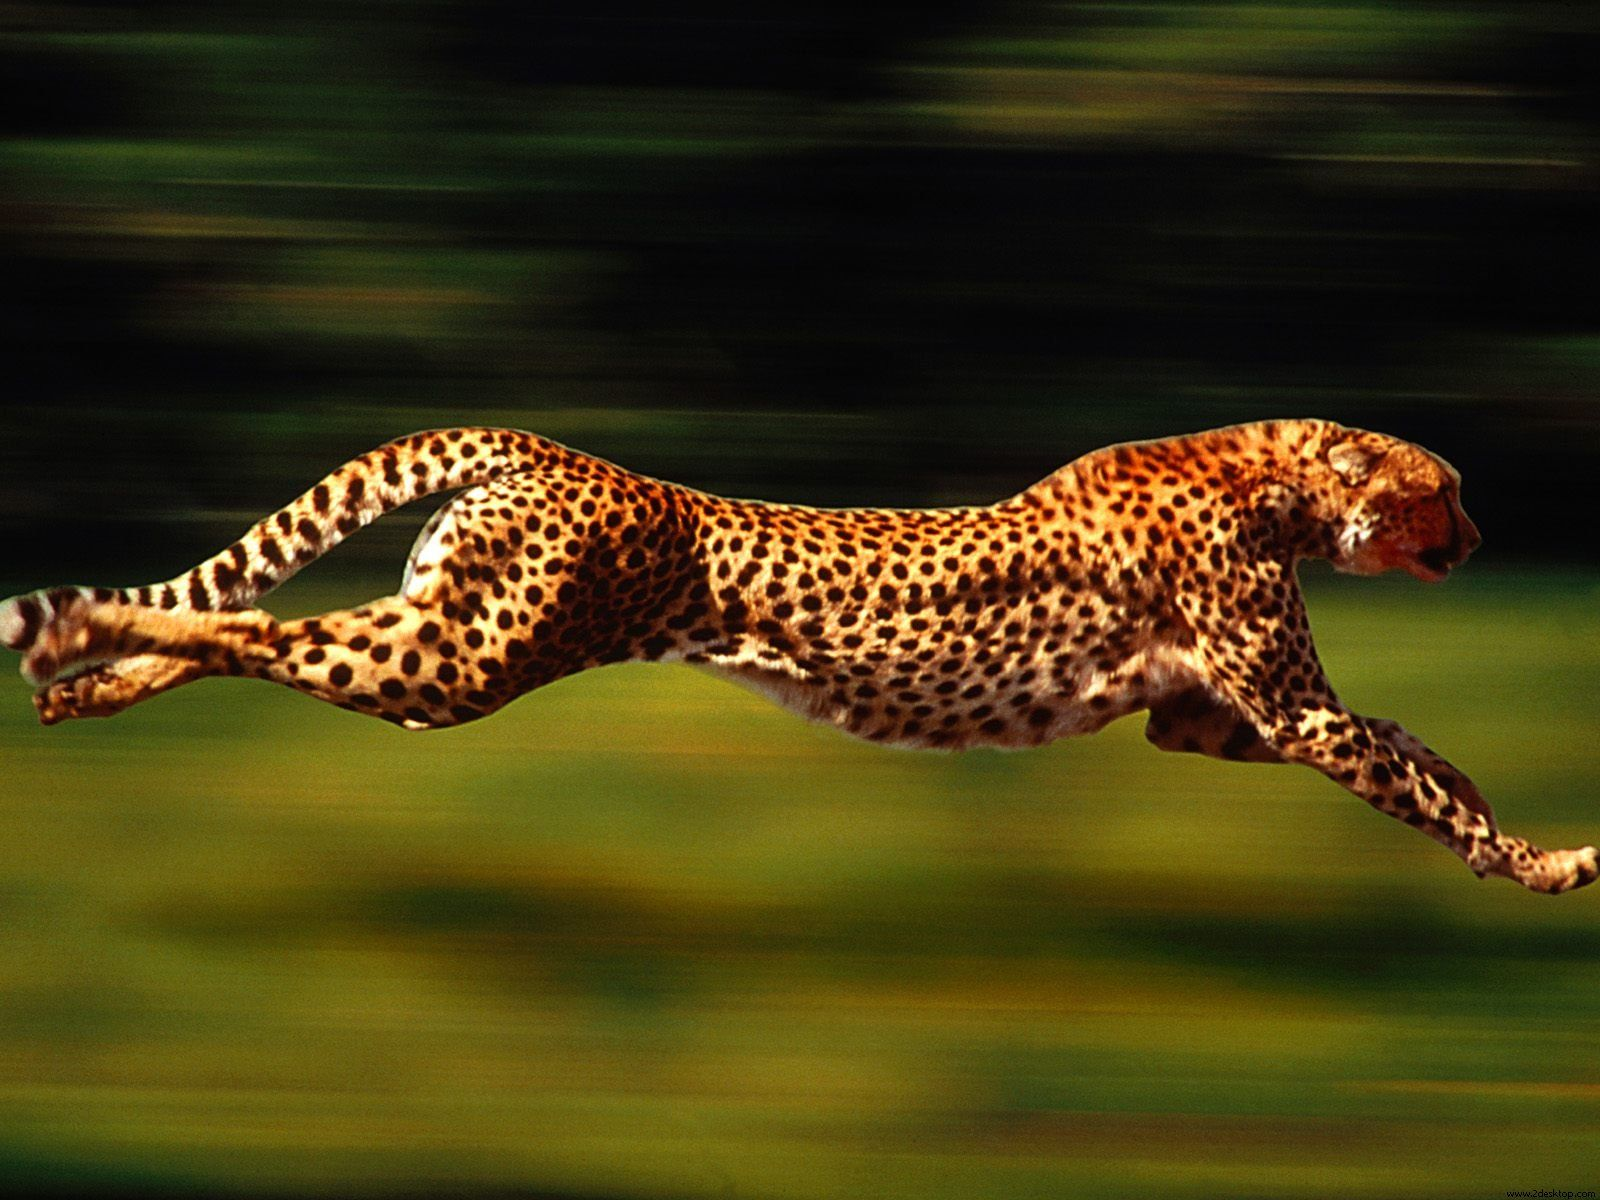 The cheetah can run faster than any other land animal— as fast as 112 to